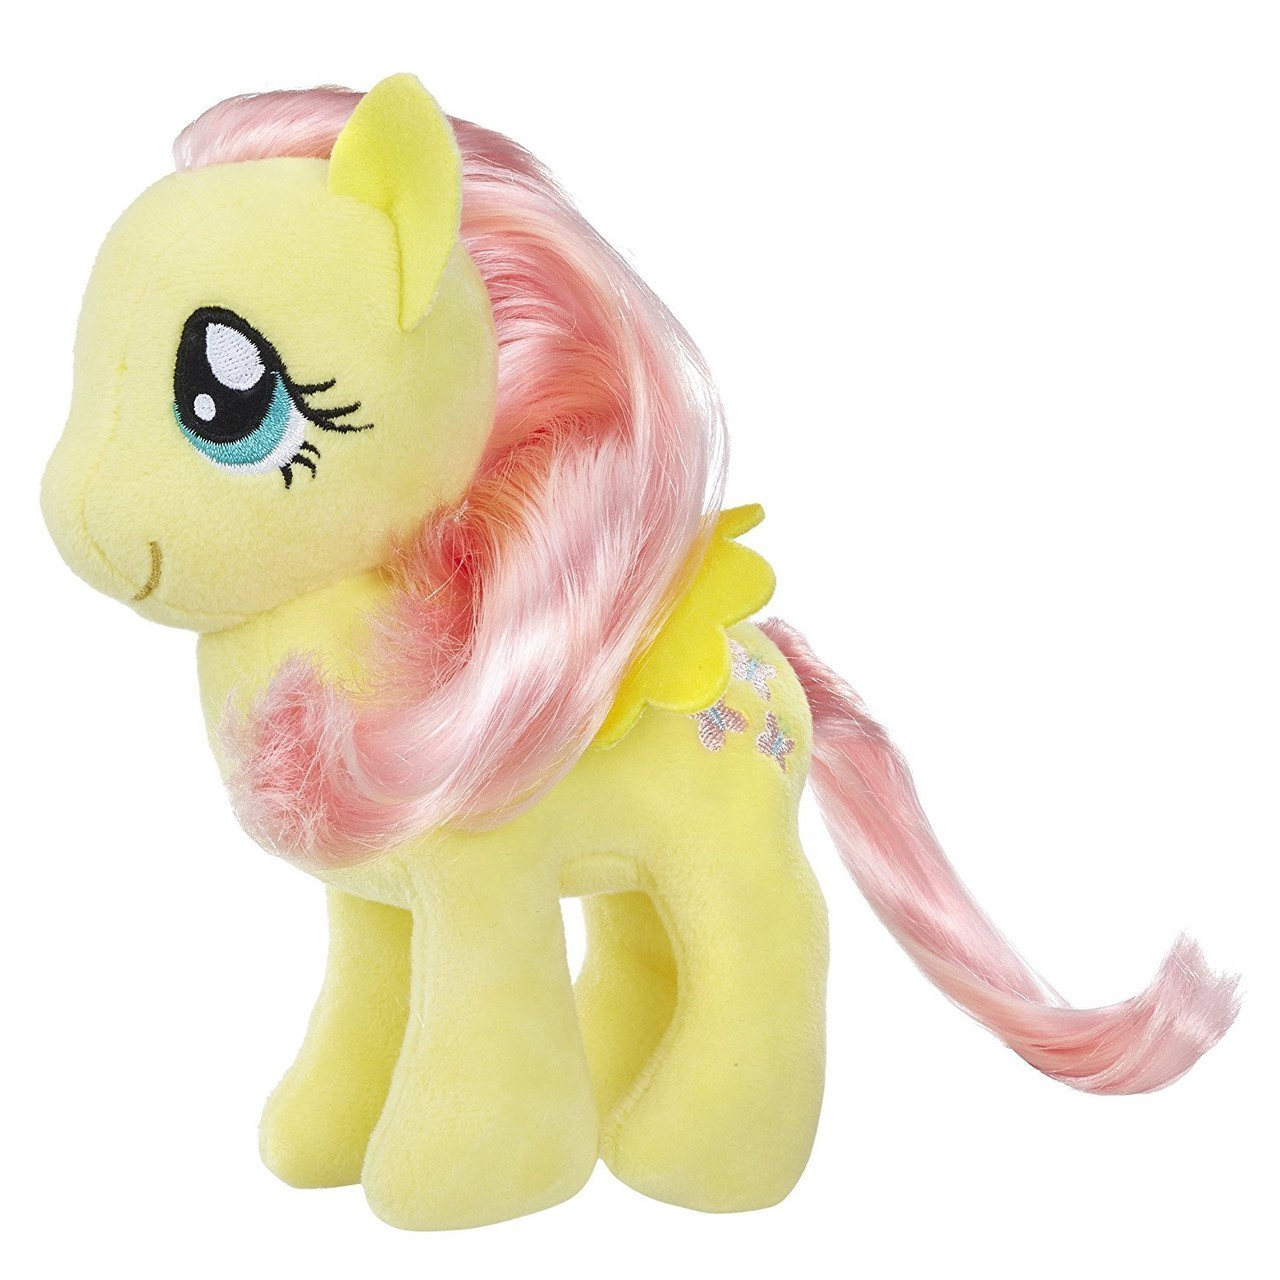 MY LITTLE PONY THE MOVIE FLUTTERSHY 7 INCHES PLUSH